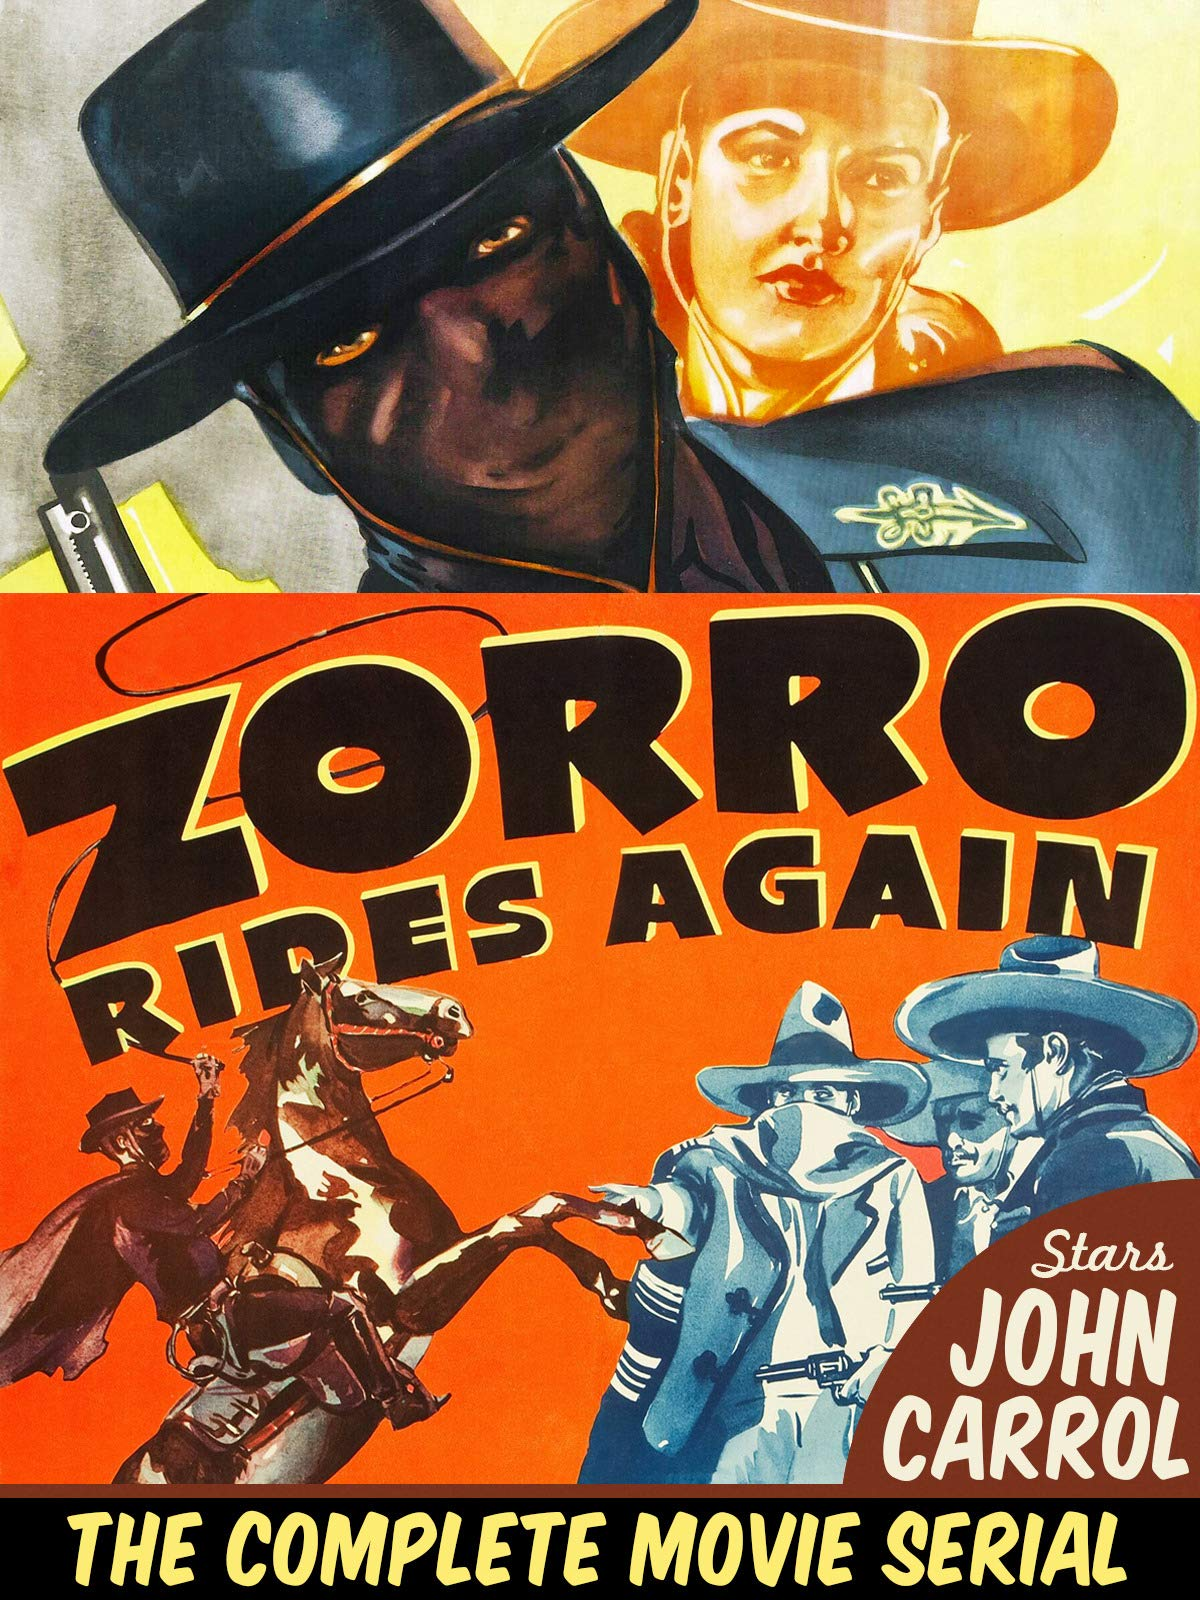 Zorro Rides Again - The Complete 12 Chapter Serial